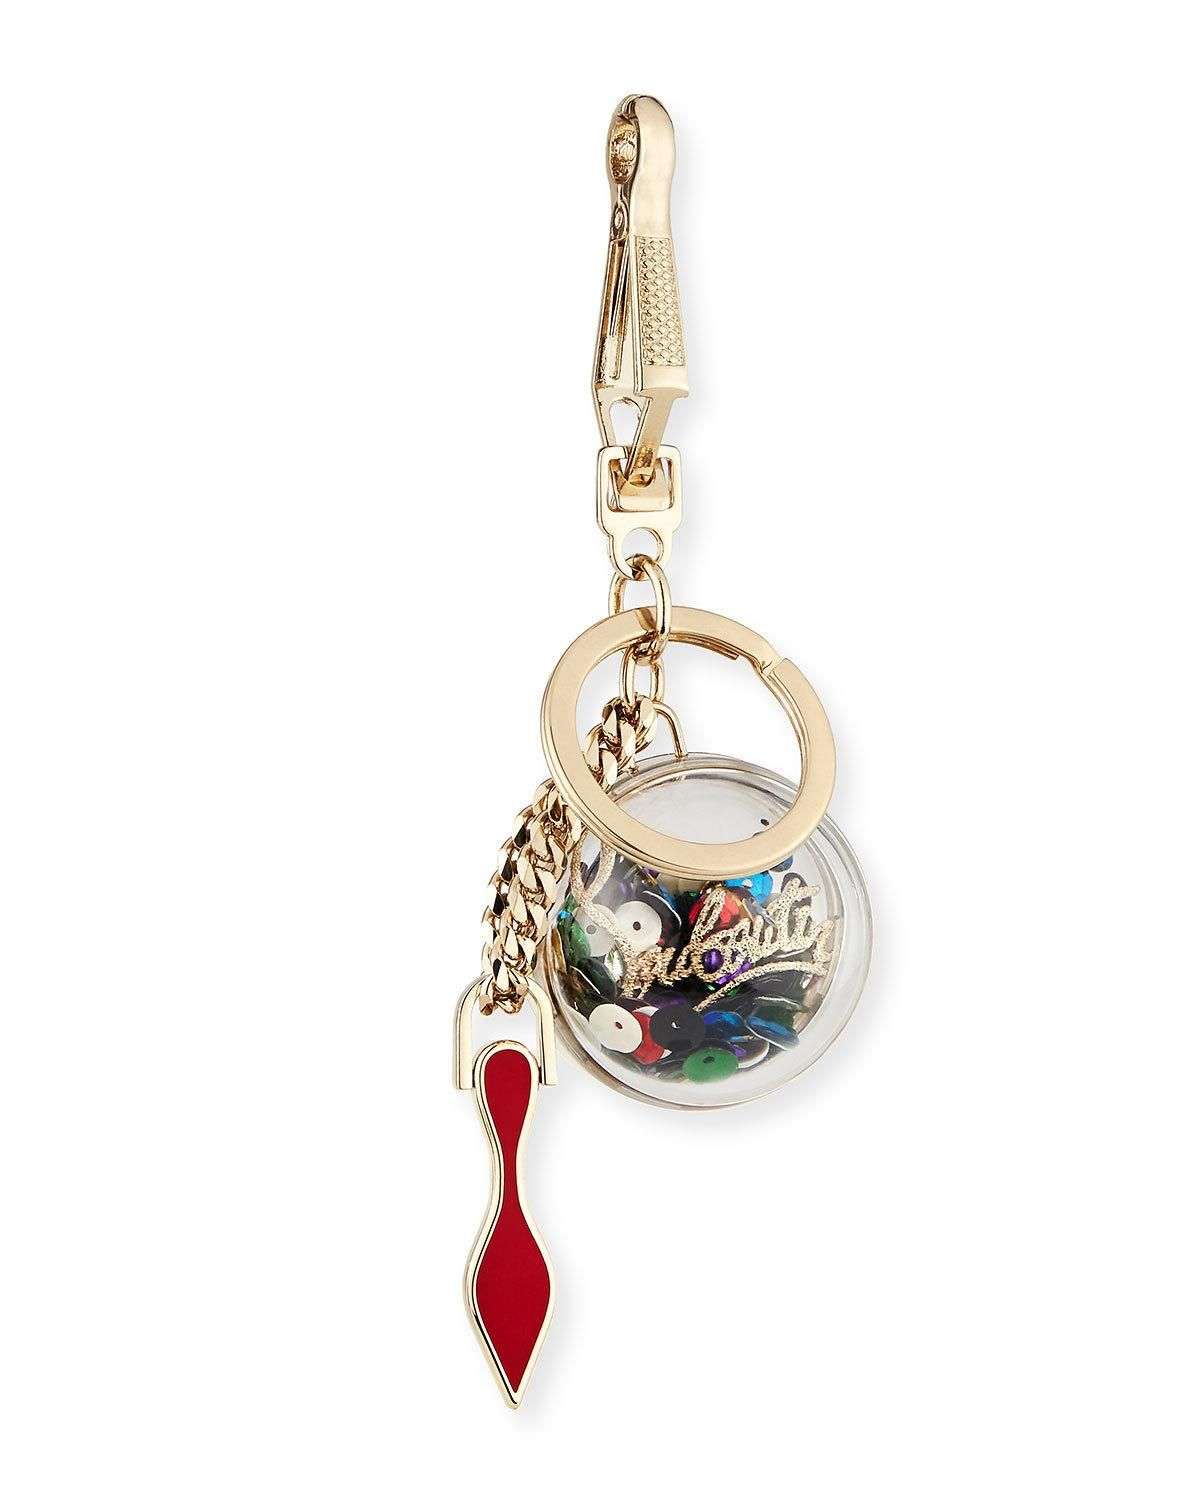 8a71b67d304 Christian Louboutin Golden Sequin Key Ring Bag Charm   Products ...